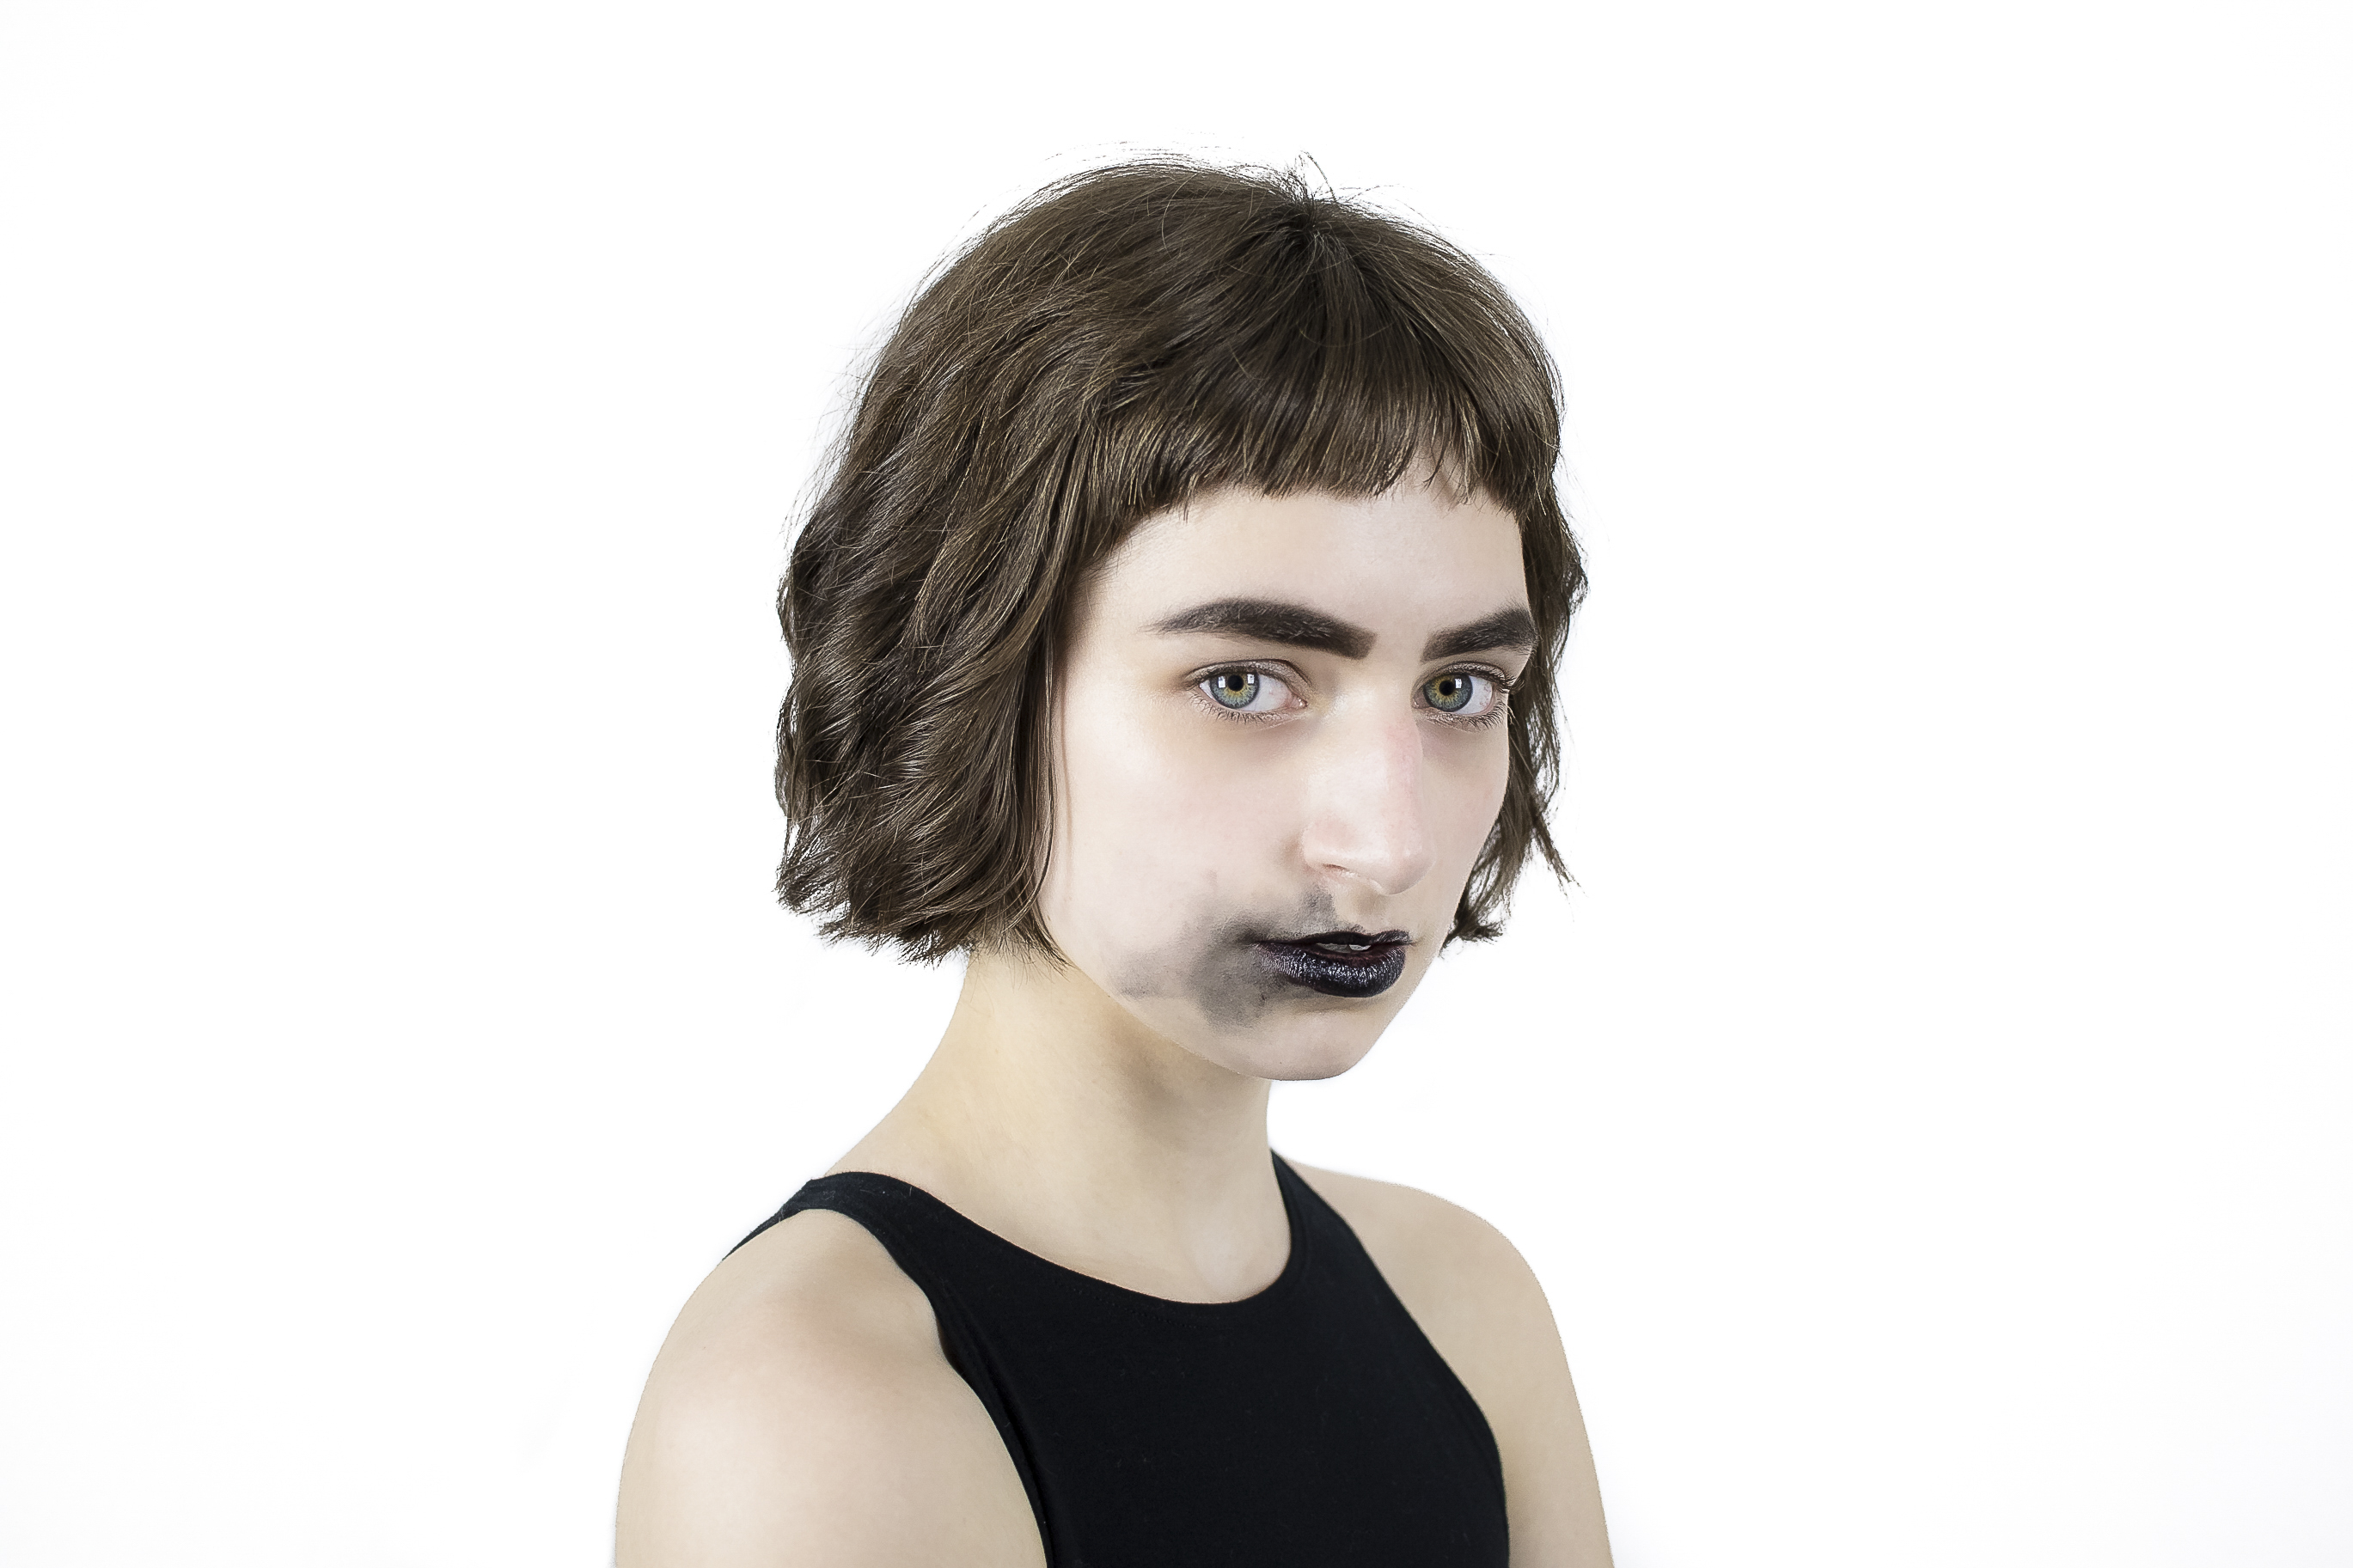 Portrait Photo of Woman in Black Sleeveless Top With Smudged Black Lipstick